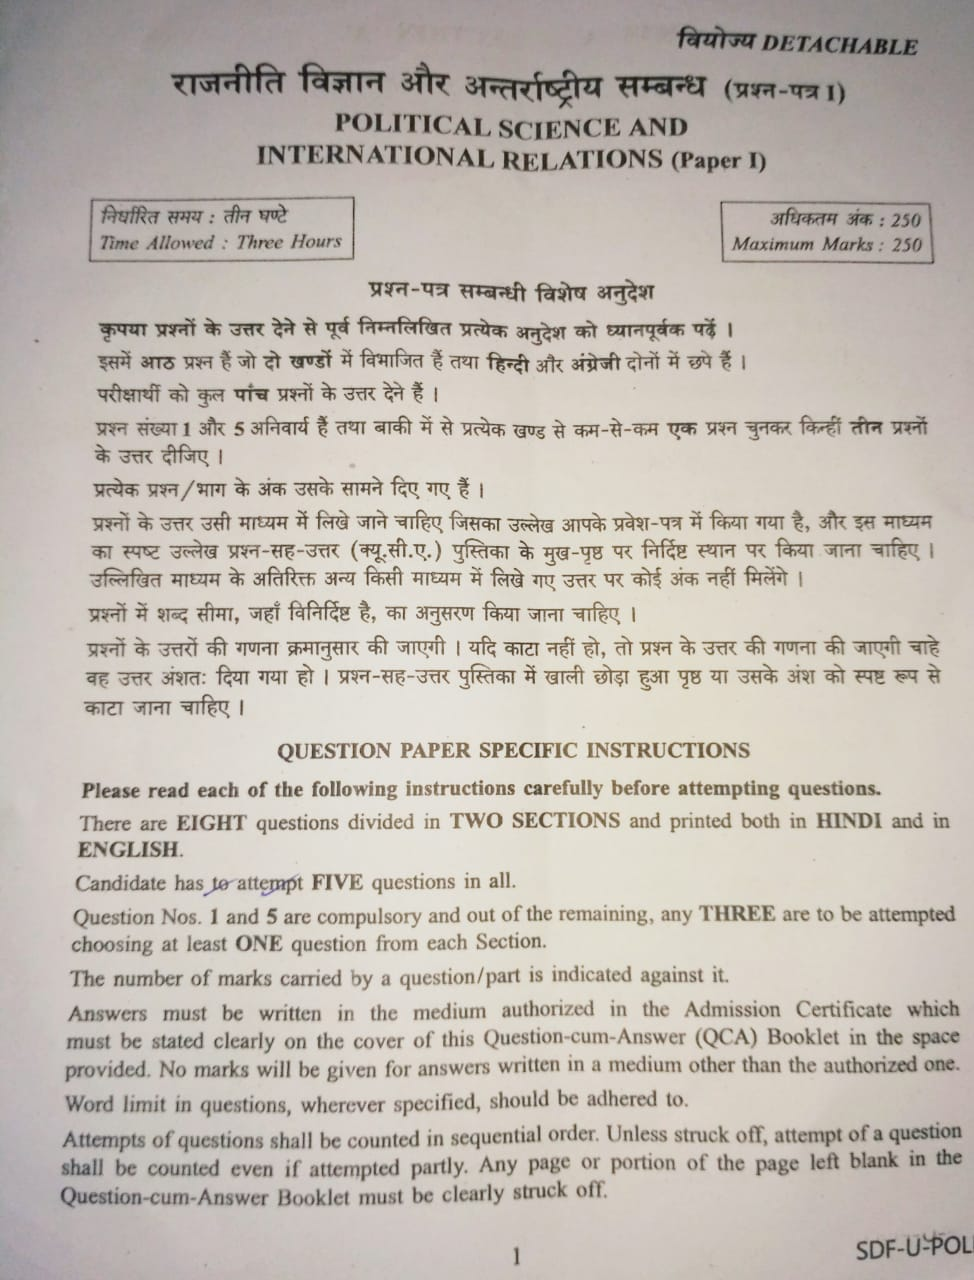 POLITICAL SCIENCE and INTERNATIONAL RELATIONS (PSIR) Optional Question Paper 1 UPSC Mains Civil Services 2019_1